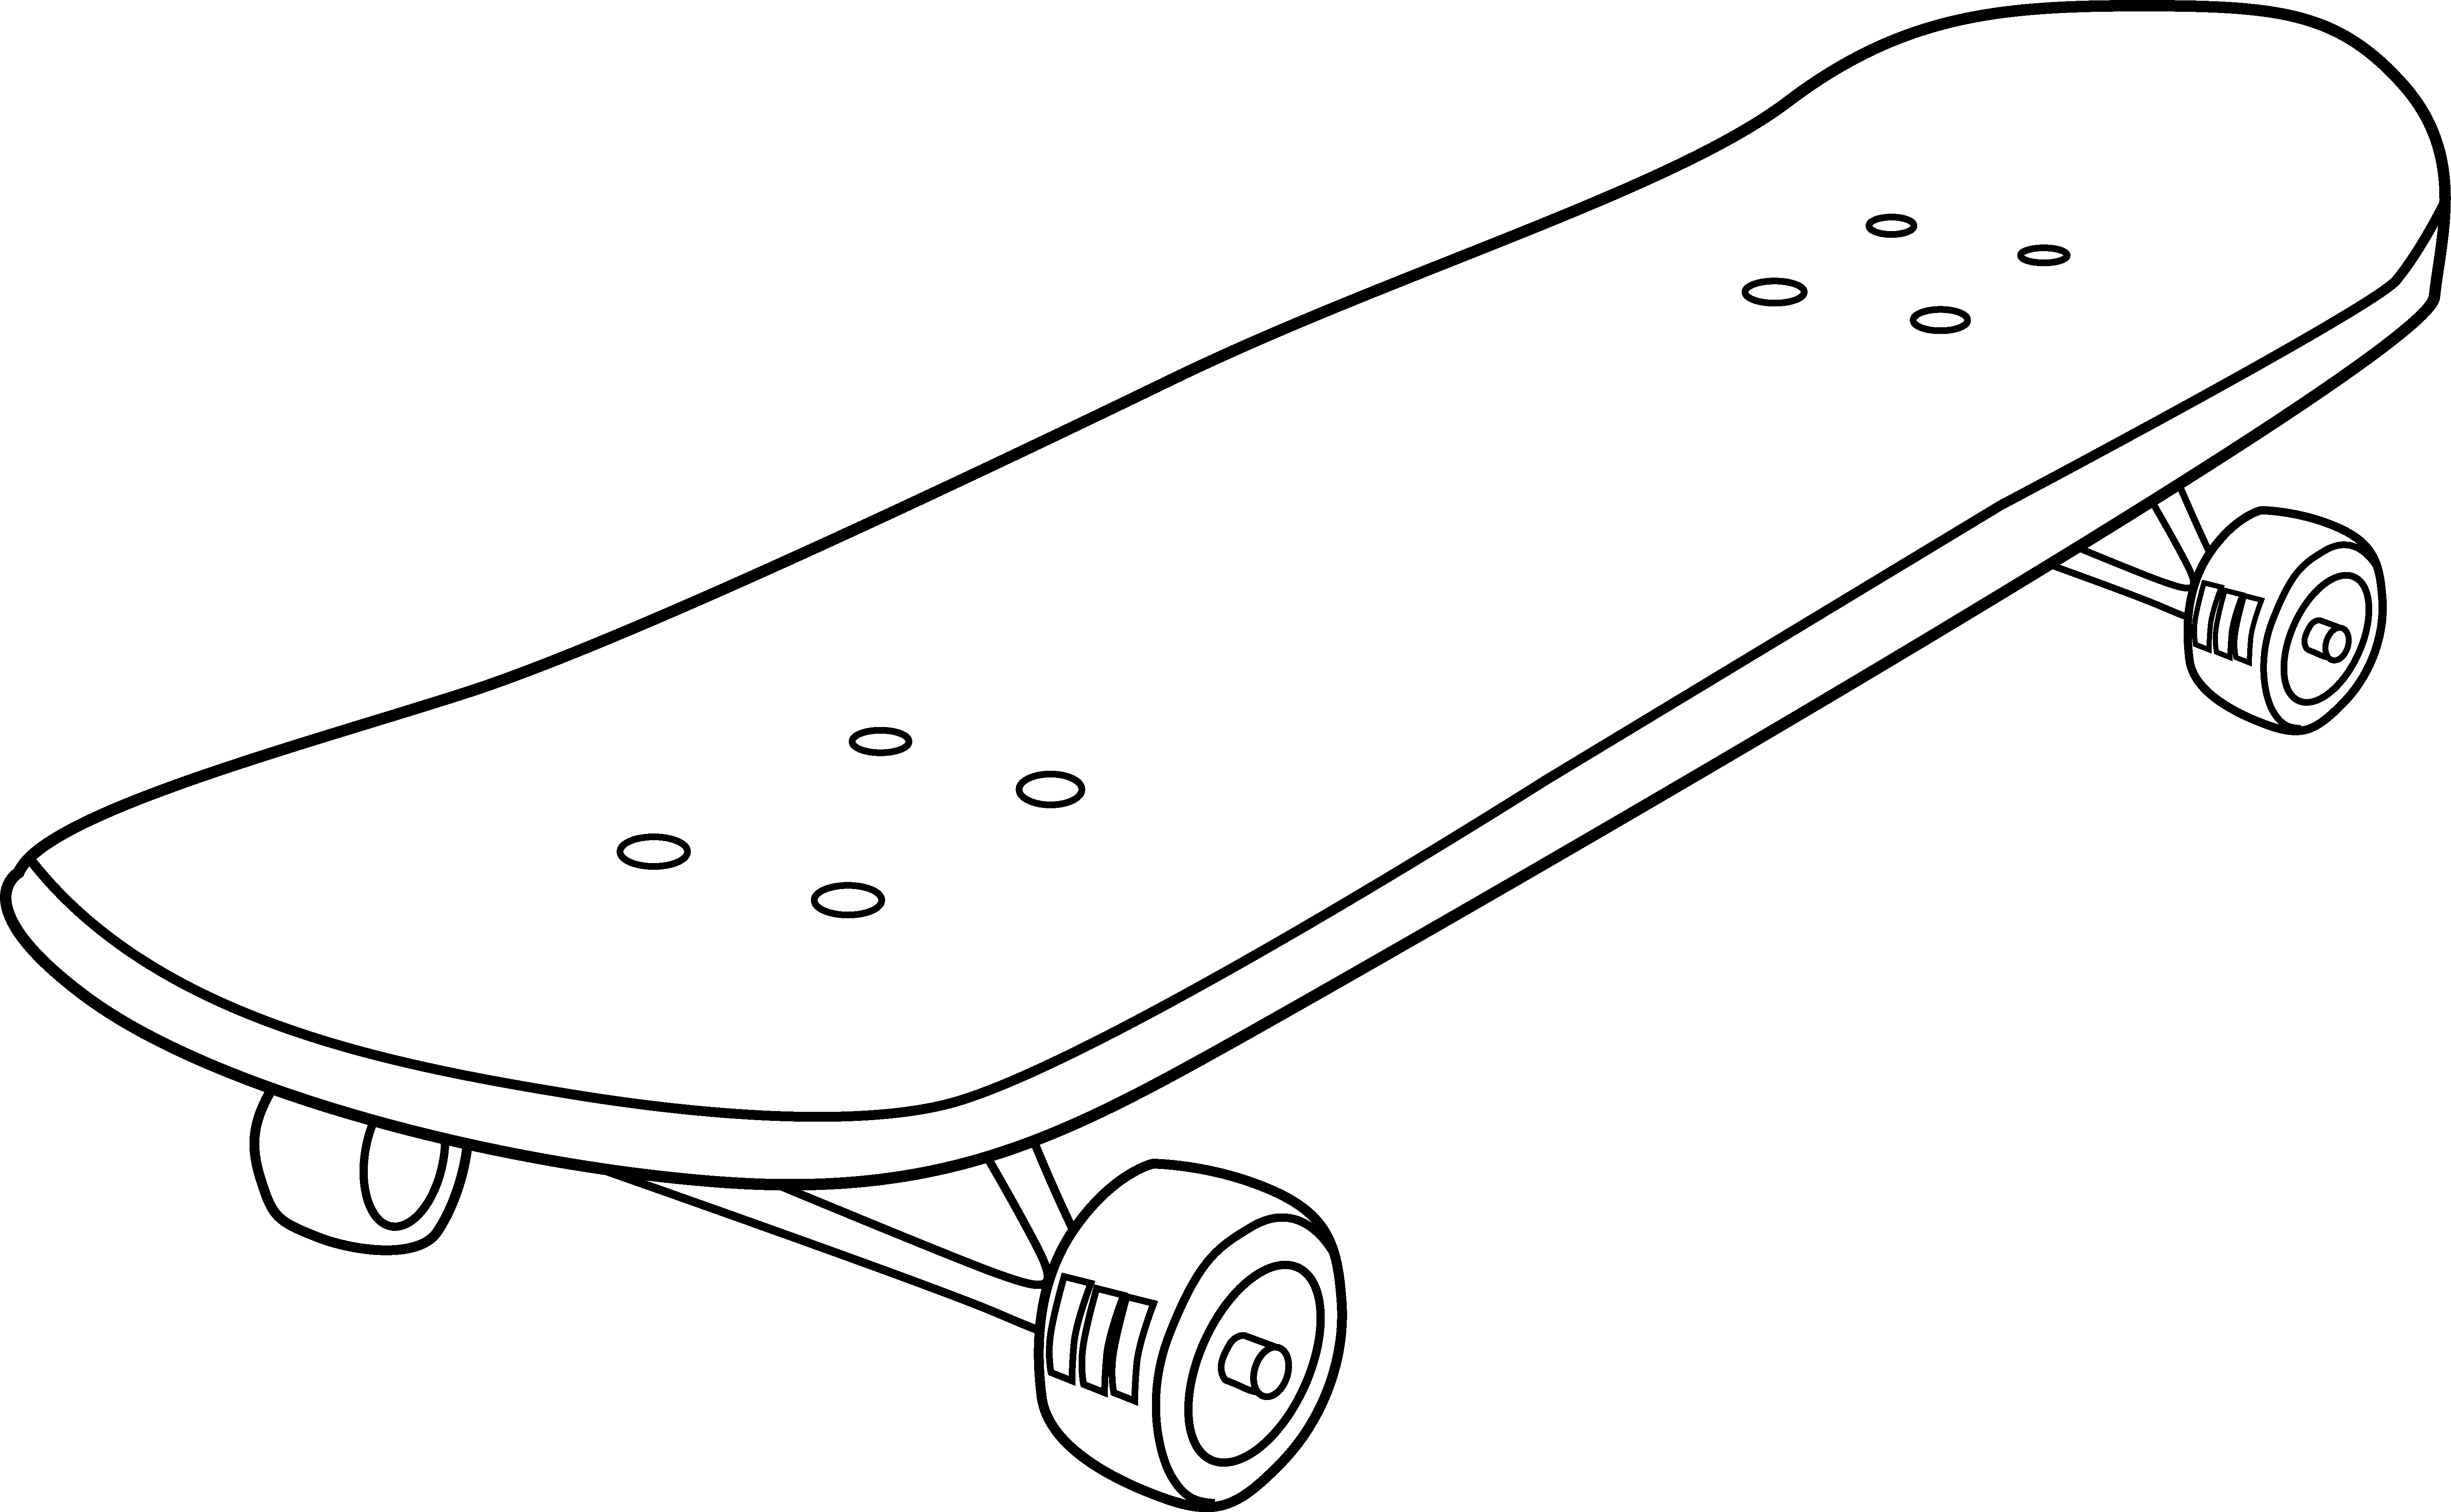 skateboard colouring pages skateboard coloring download skateboard coloring for free pages skateboard colouring